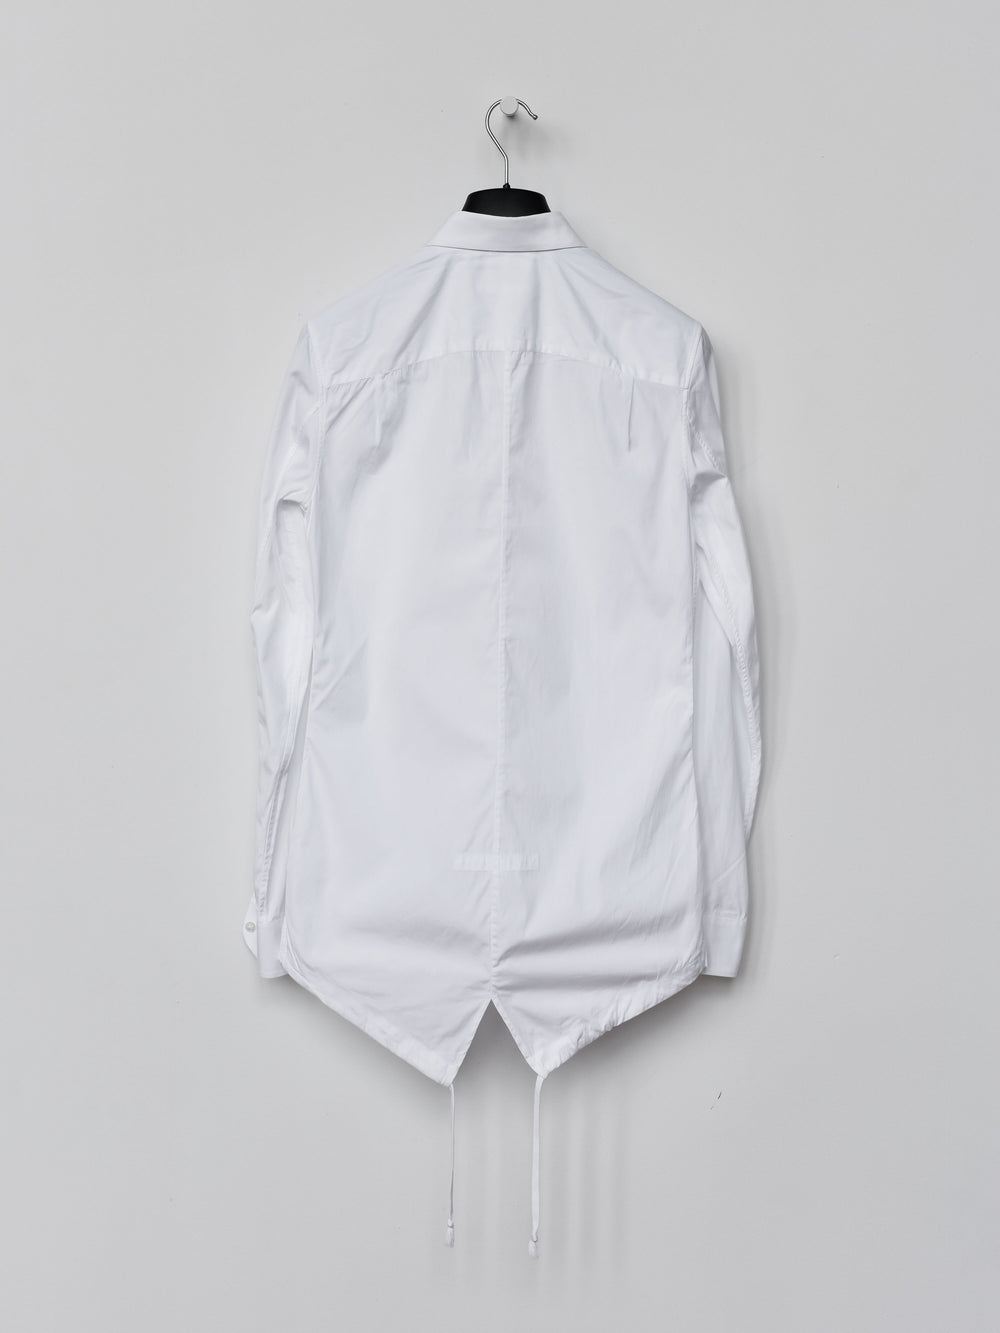 Helmut Lang AW03 Fishtail Button Shirt